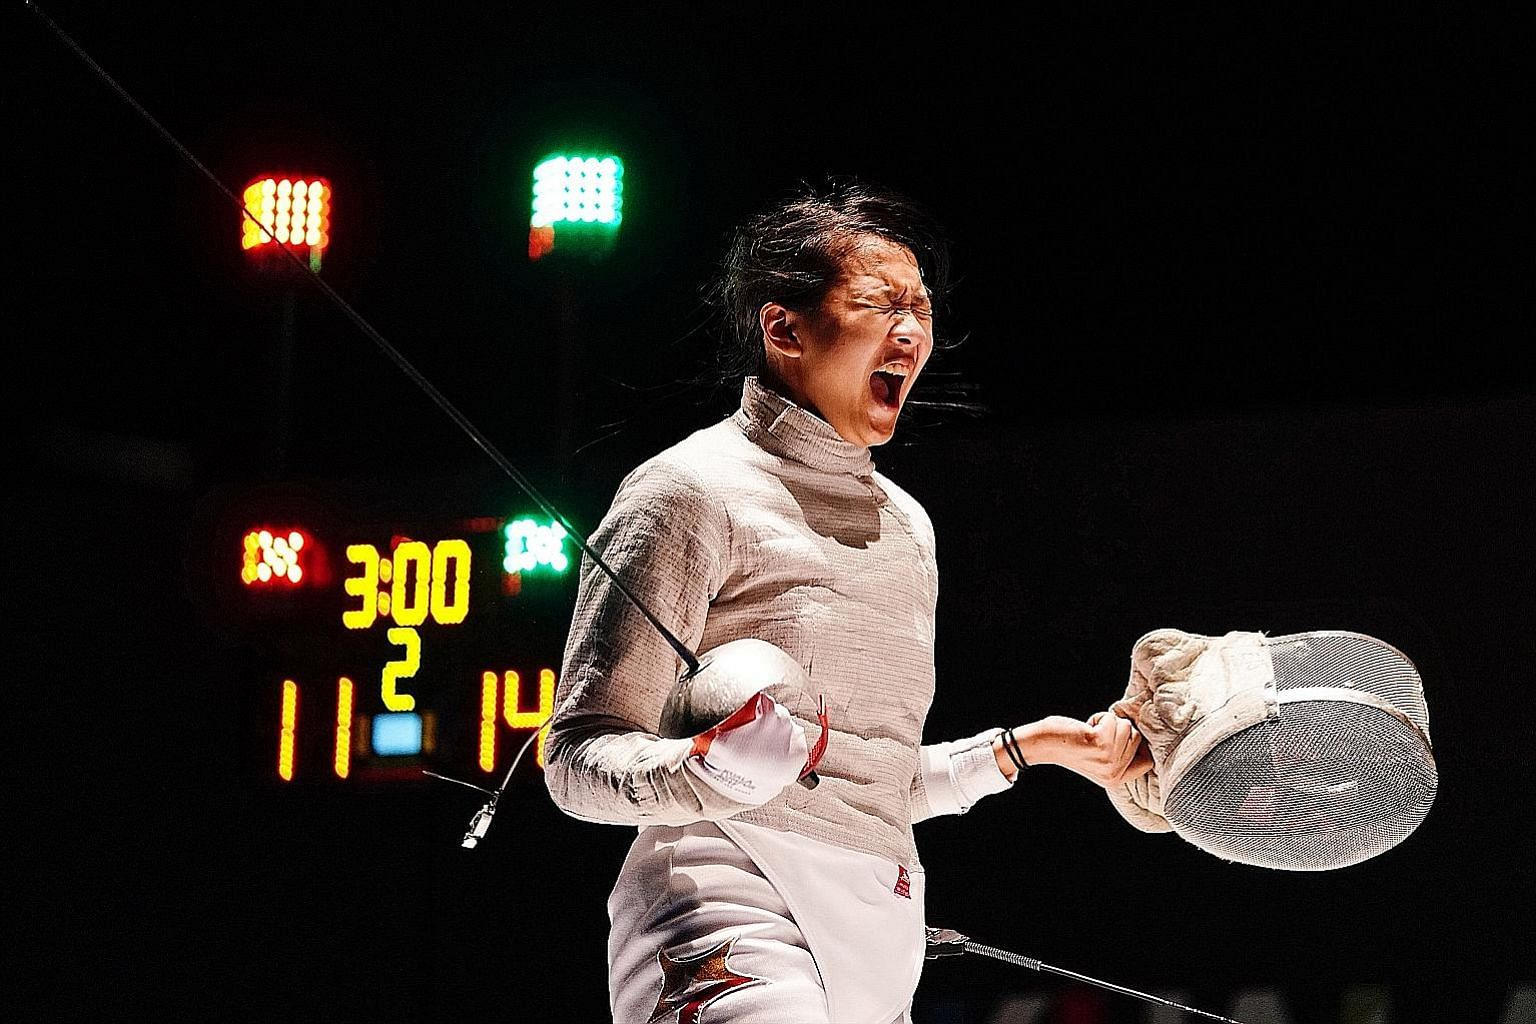 Lau Ywen letting off a victory cry after beating Vietnam's Bui Thi Thu Ha in the individual sabre semi-finals at the SEA Games in Kuala Lumpur last August. She went one better by overcoming Thailand's Pornsawan Ngernrungruangroj in the final.